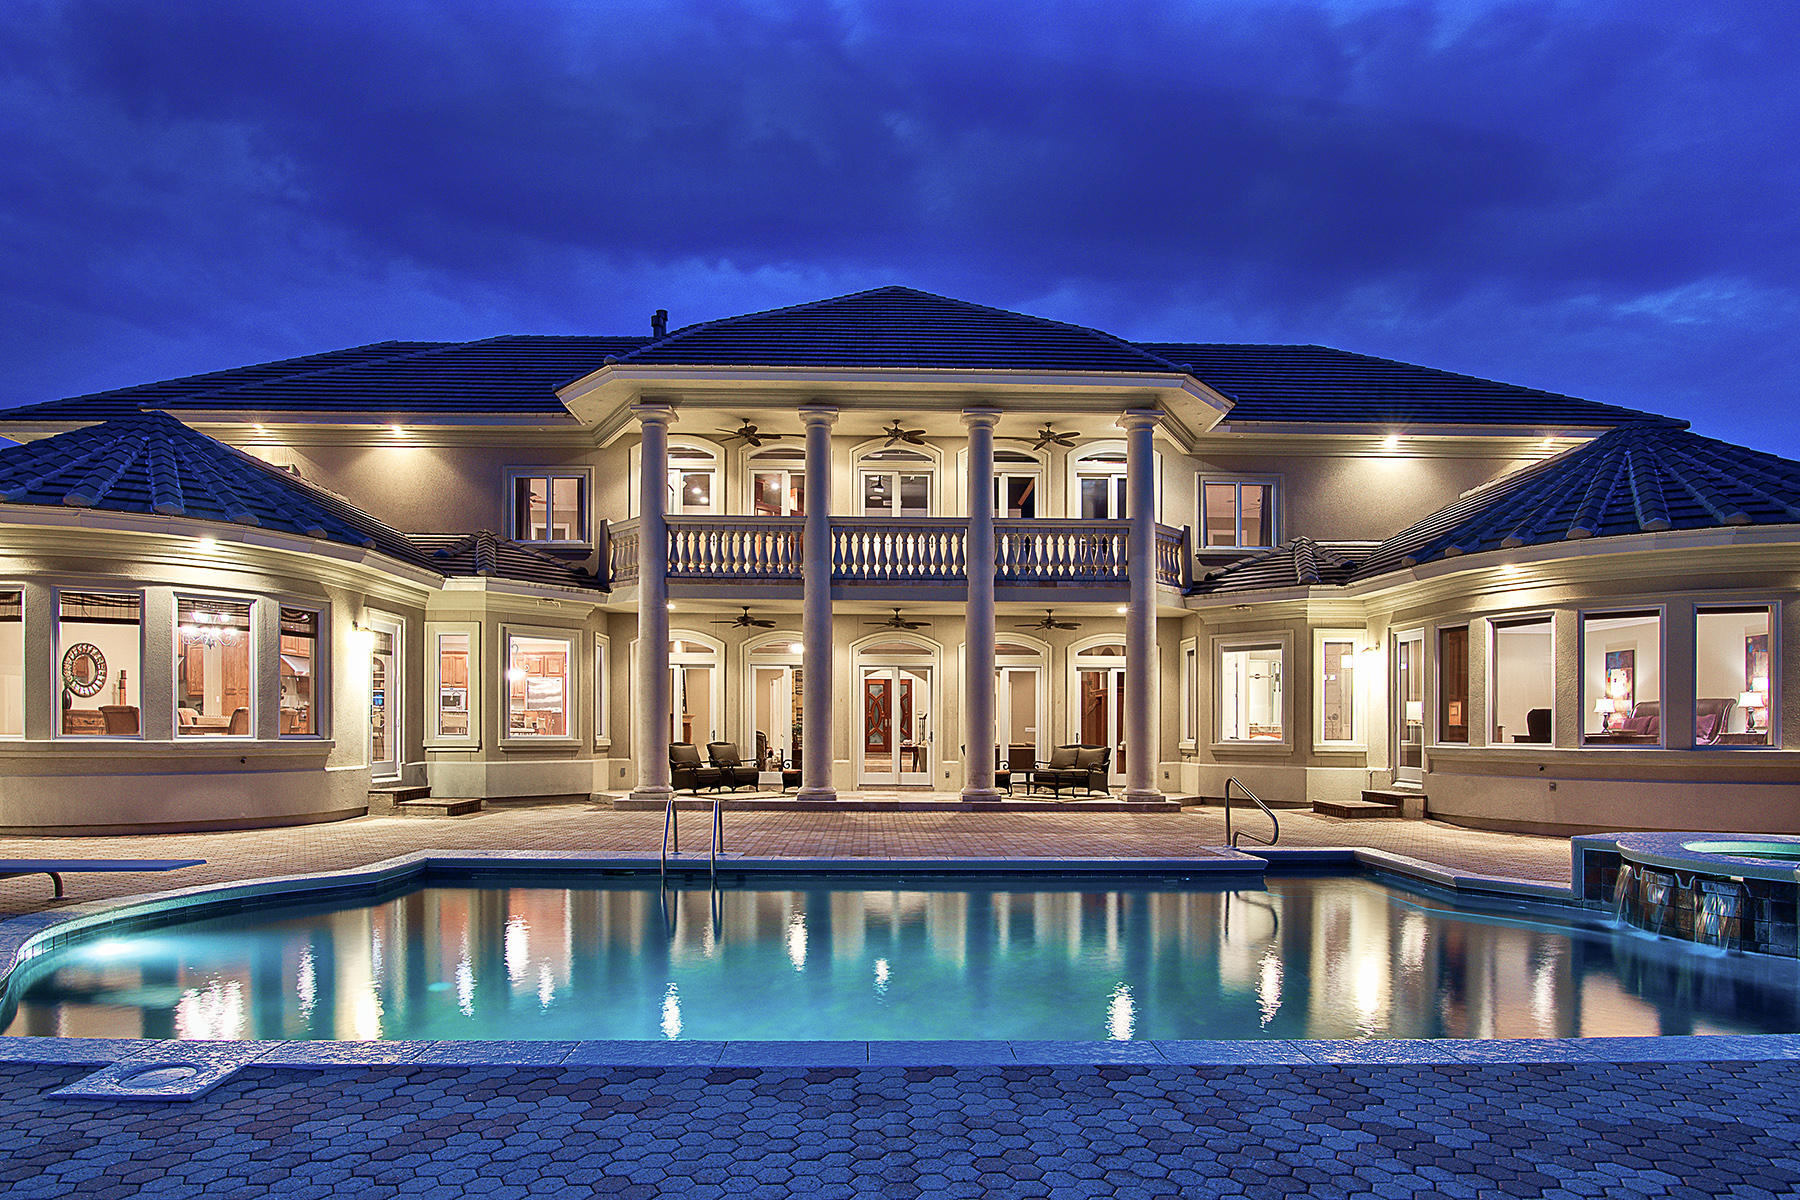 Single Family Home for Sale at MAGNIFICENT WATERFRONT ESTATE 3807 Indian Trail Destin, Florida 32541 United States